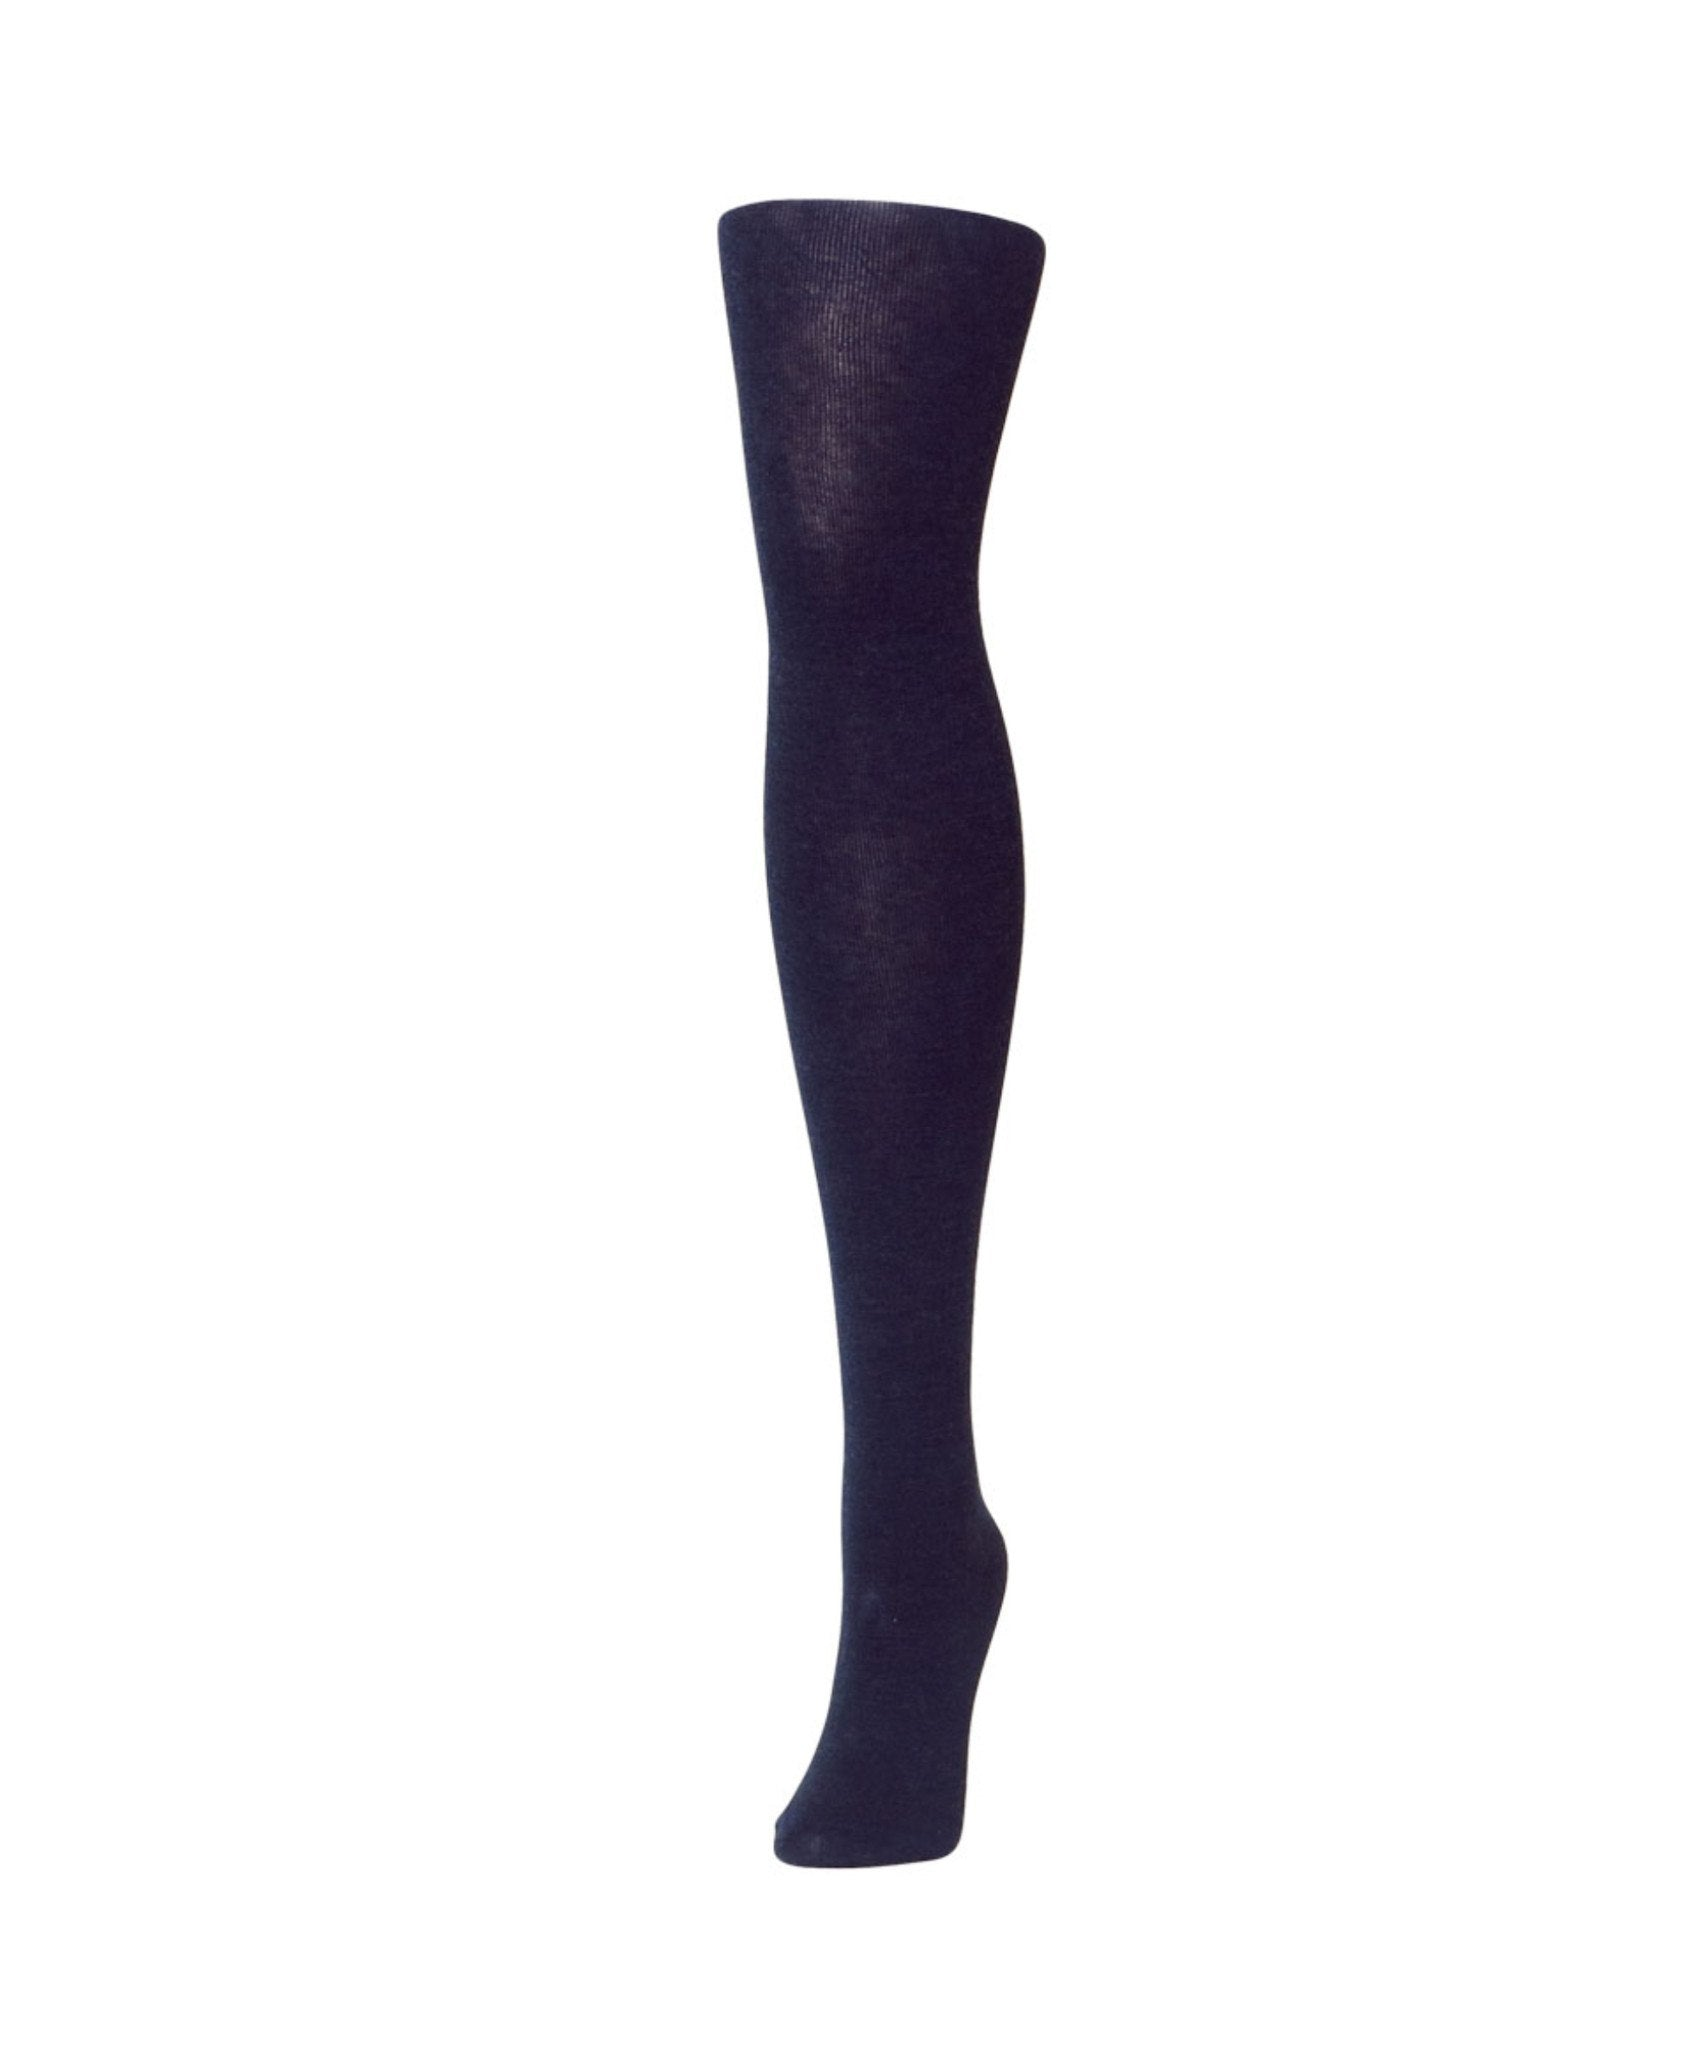 Natural Bamboo Tights - MeMoi - 2